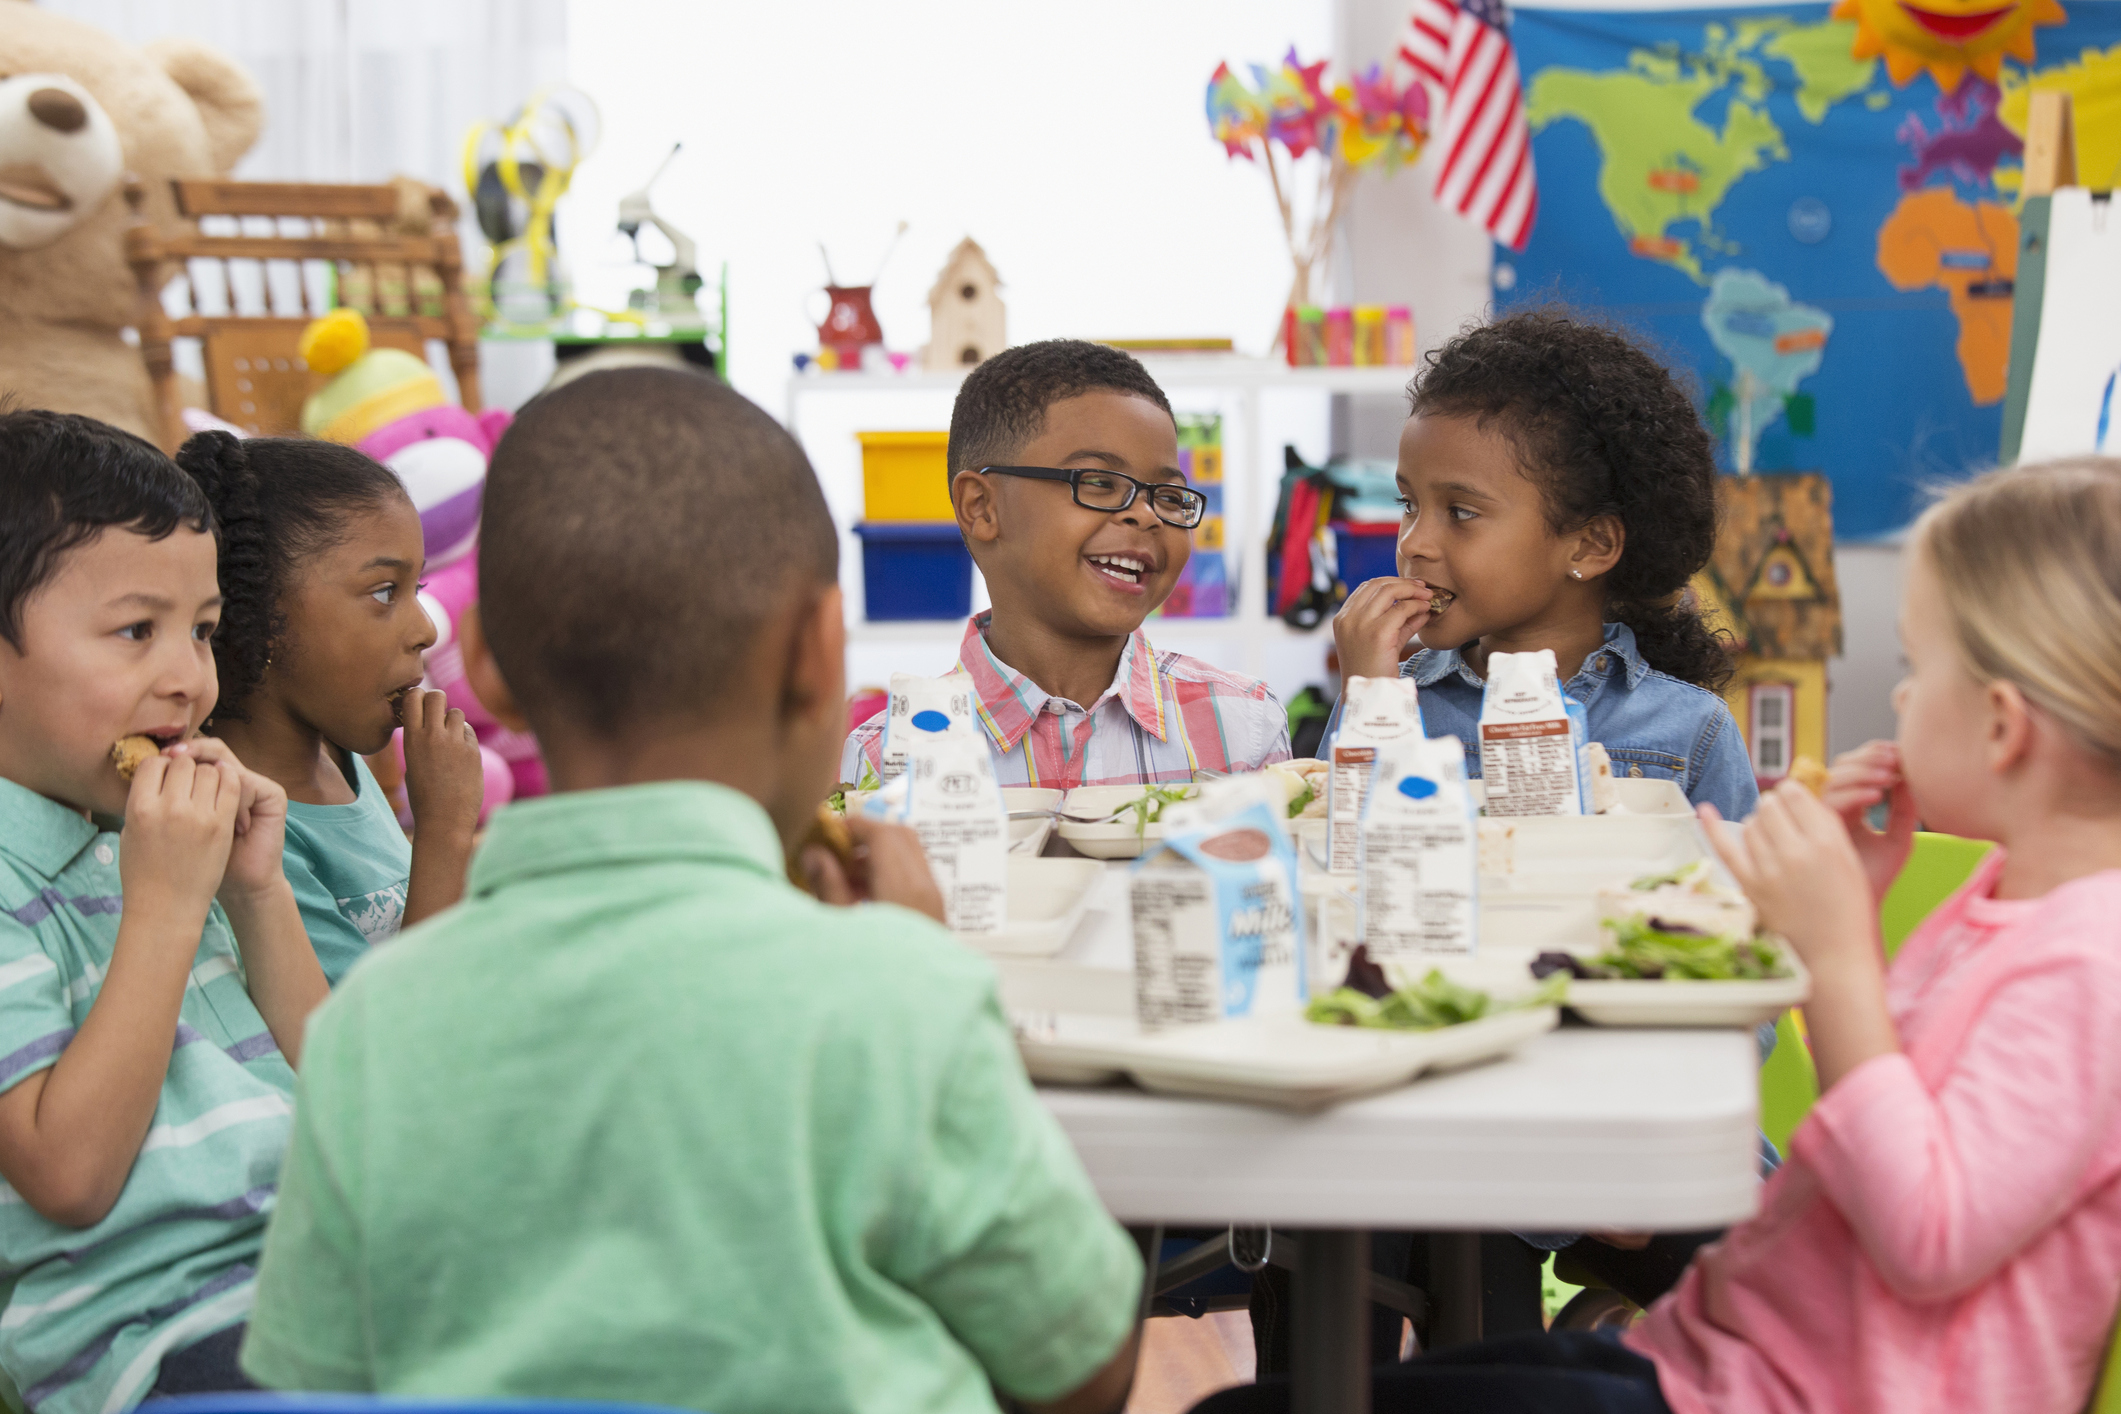 Students eating lunch at school